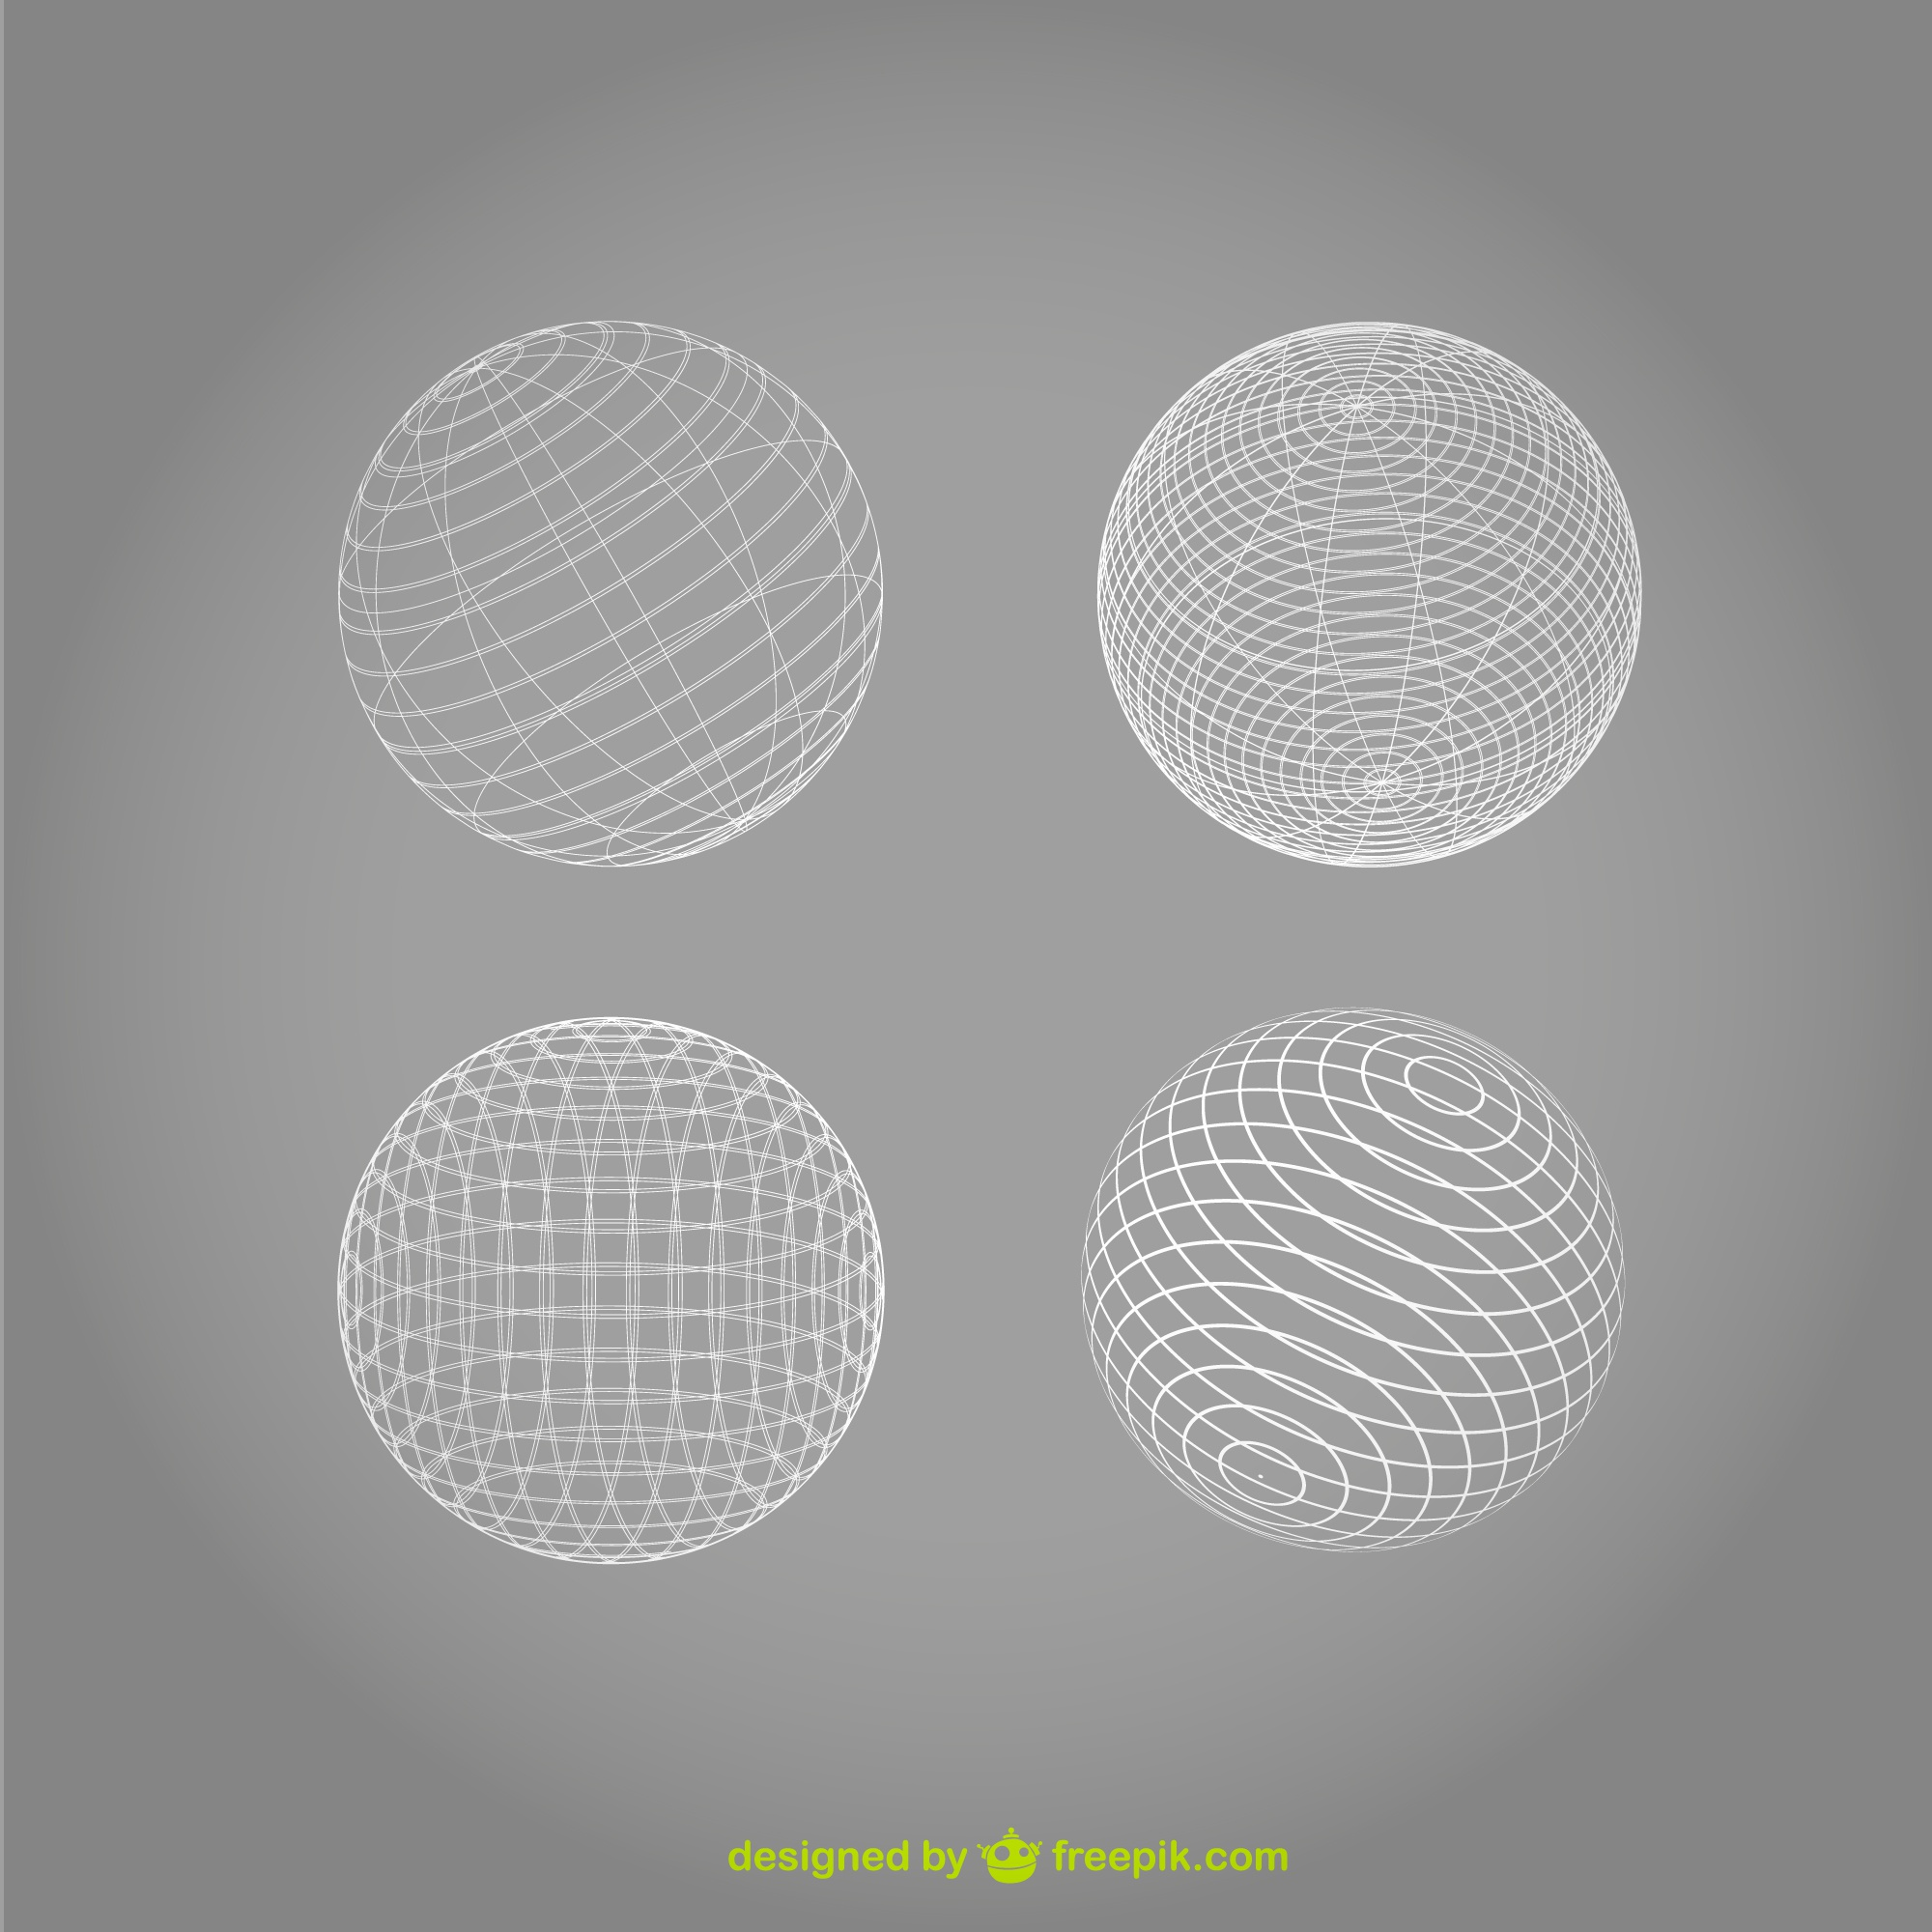 Sphere vector wireframe design